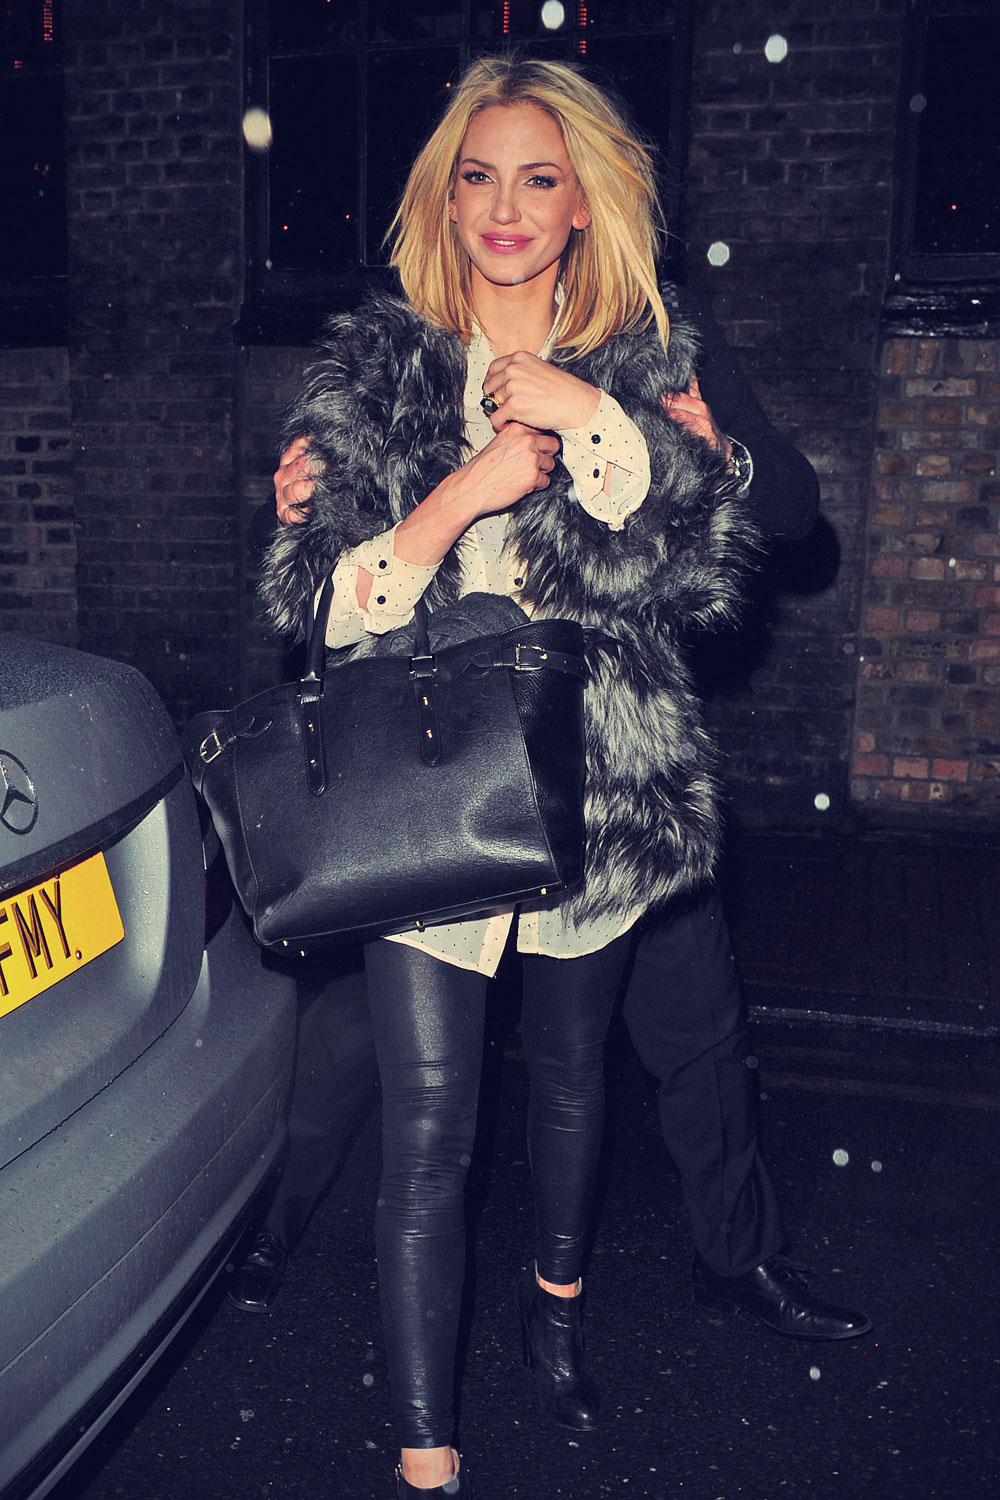 Sarah Harding leave Riverside Studio after filming Celeb Juice